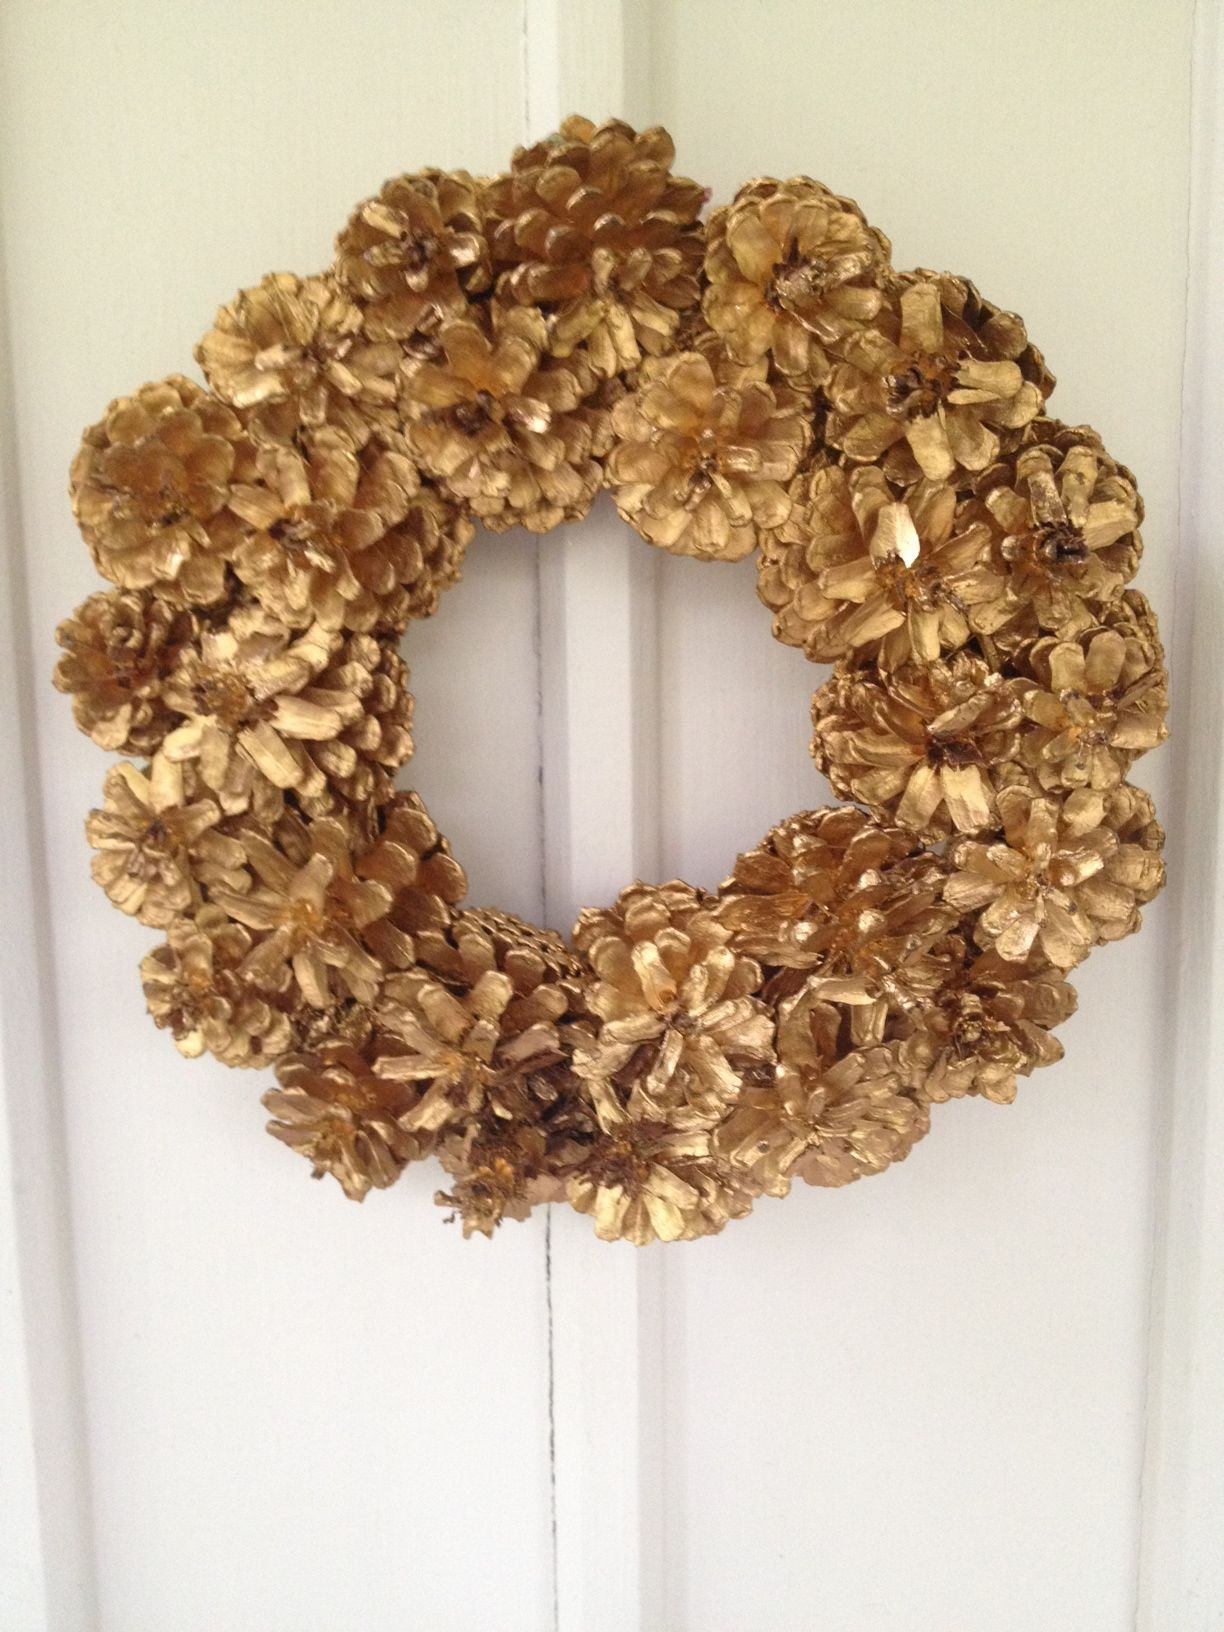 frugal do it yourself pine cone wreath includes instructions and details on how to create